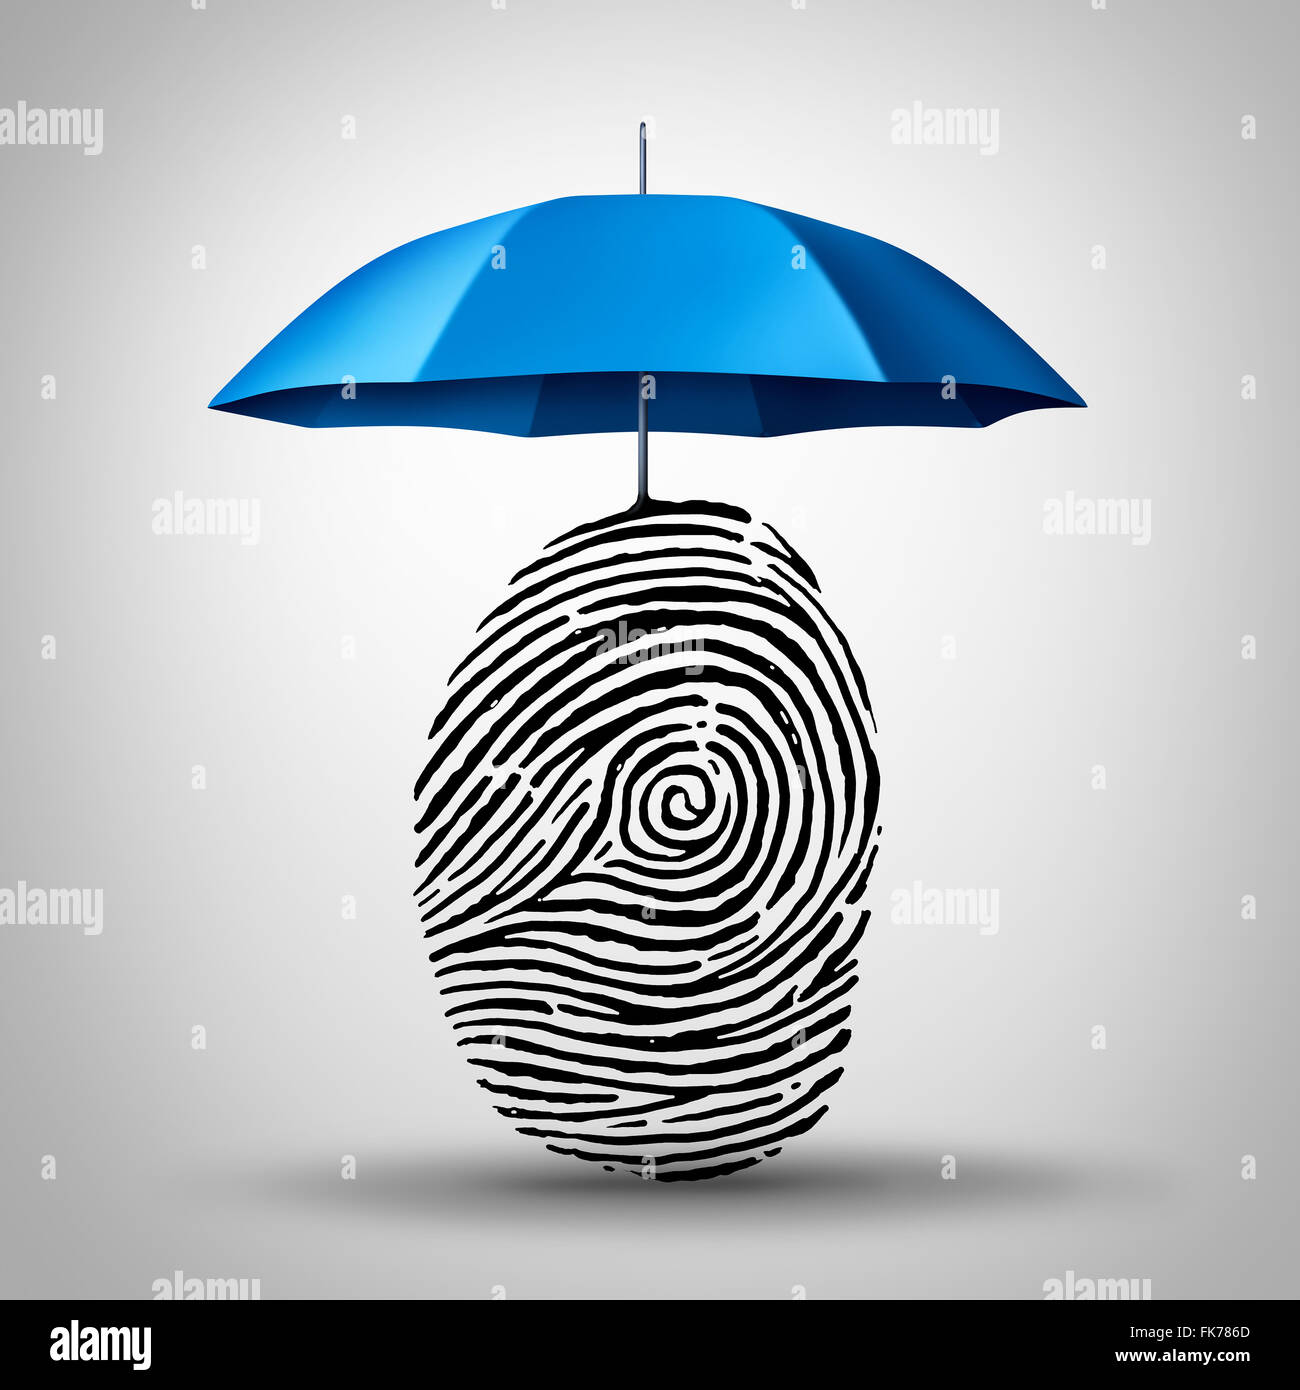 Identification protection and ID fraud safety as an umbrella protecting a fingerprint or finger print icon as an - Stock Image